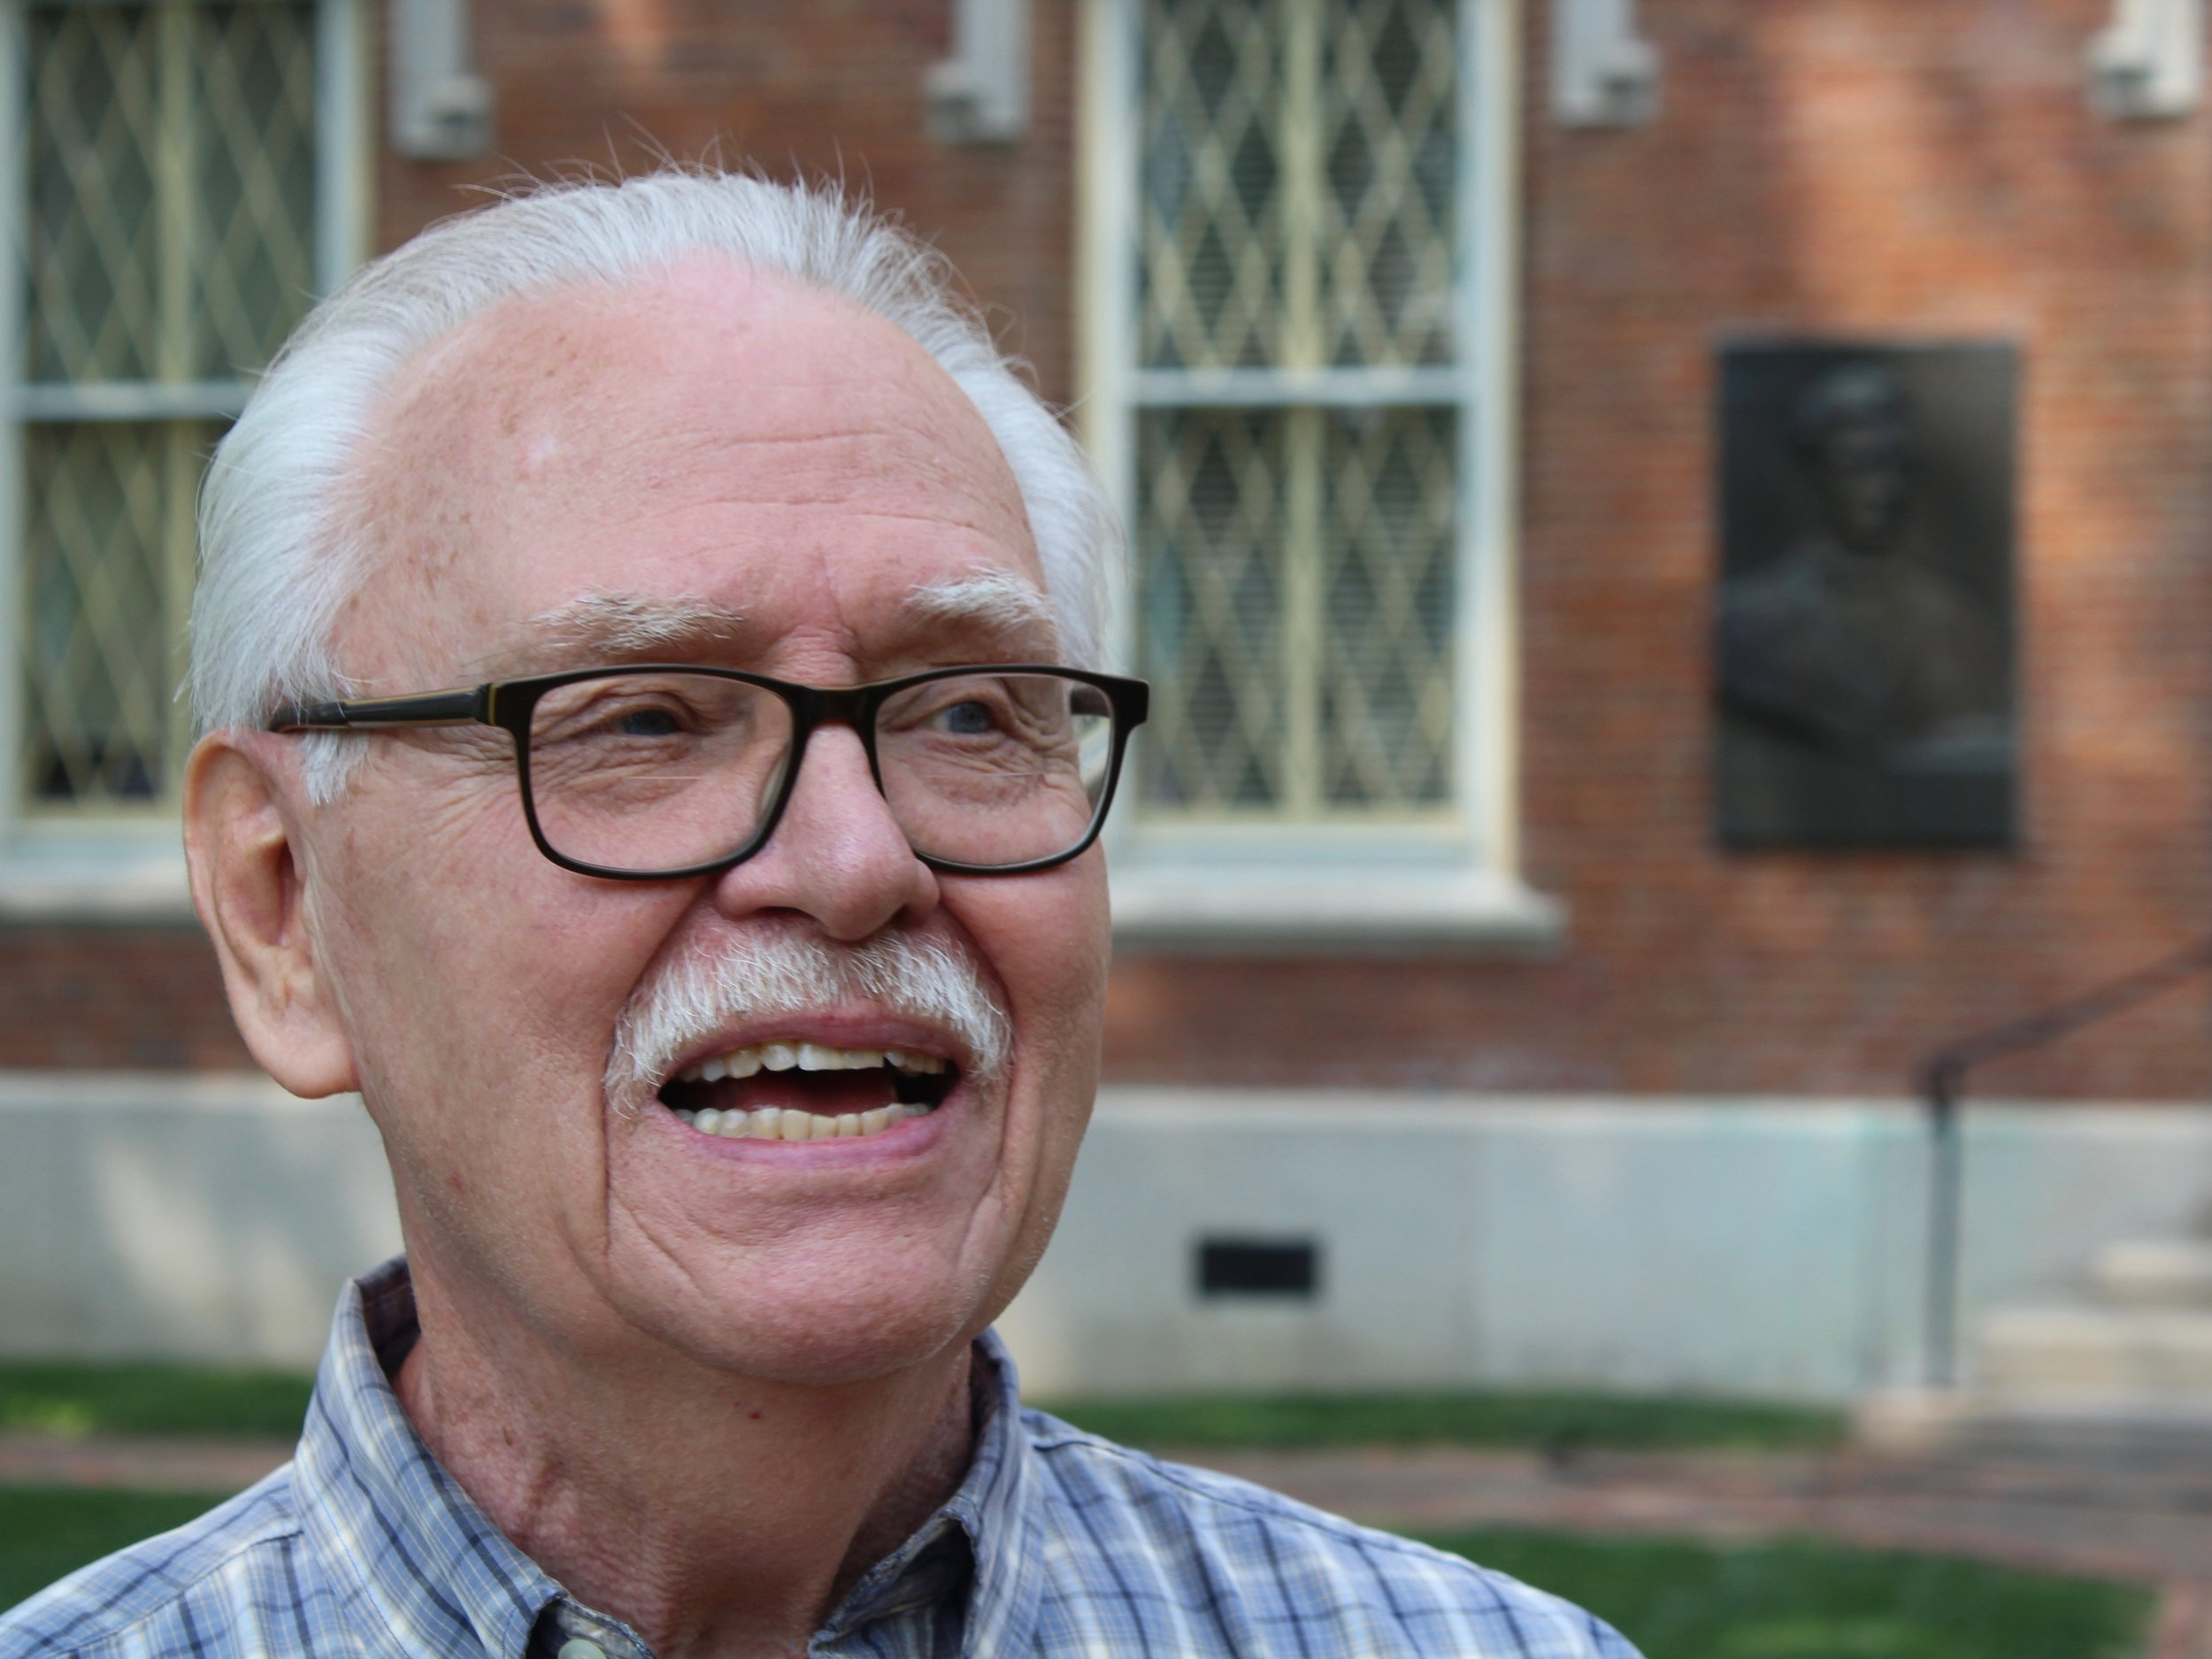 Owen Muelder talks in front of a Lincoln plaque on the east side of Old Main at Knox College, where Abraham Lincoln's debate with Stephen Douglas took place. (One Illinois/Ted Cox)